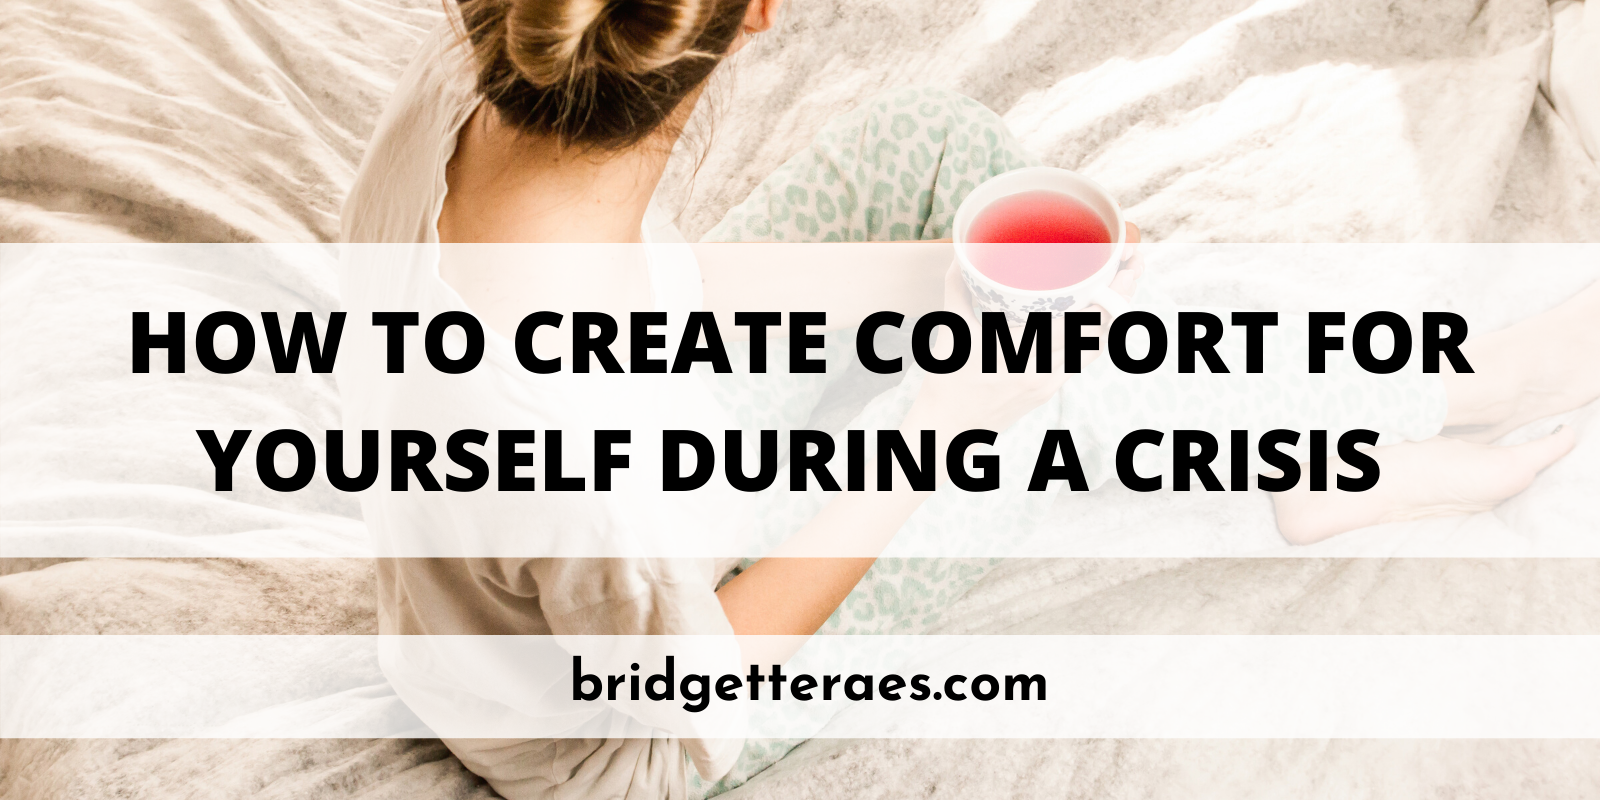 How to Create Comfort for Yourself During a Crisis